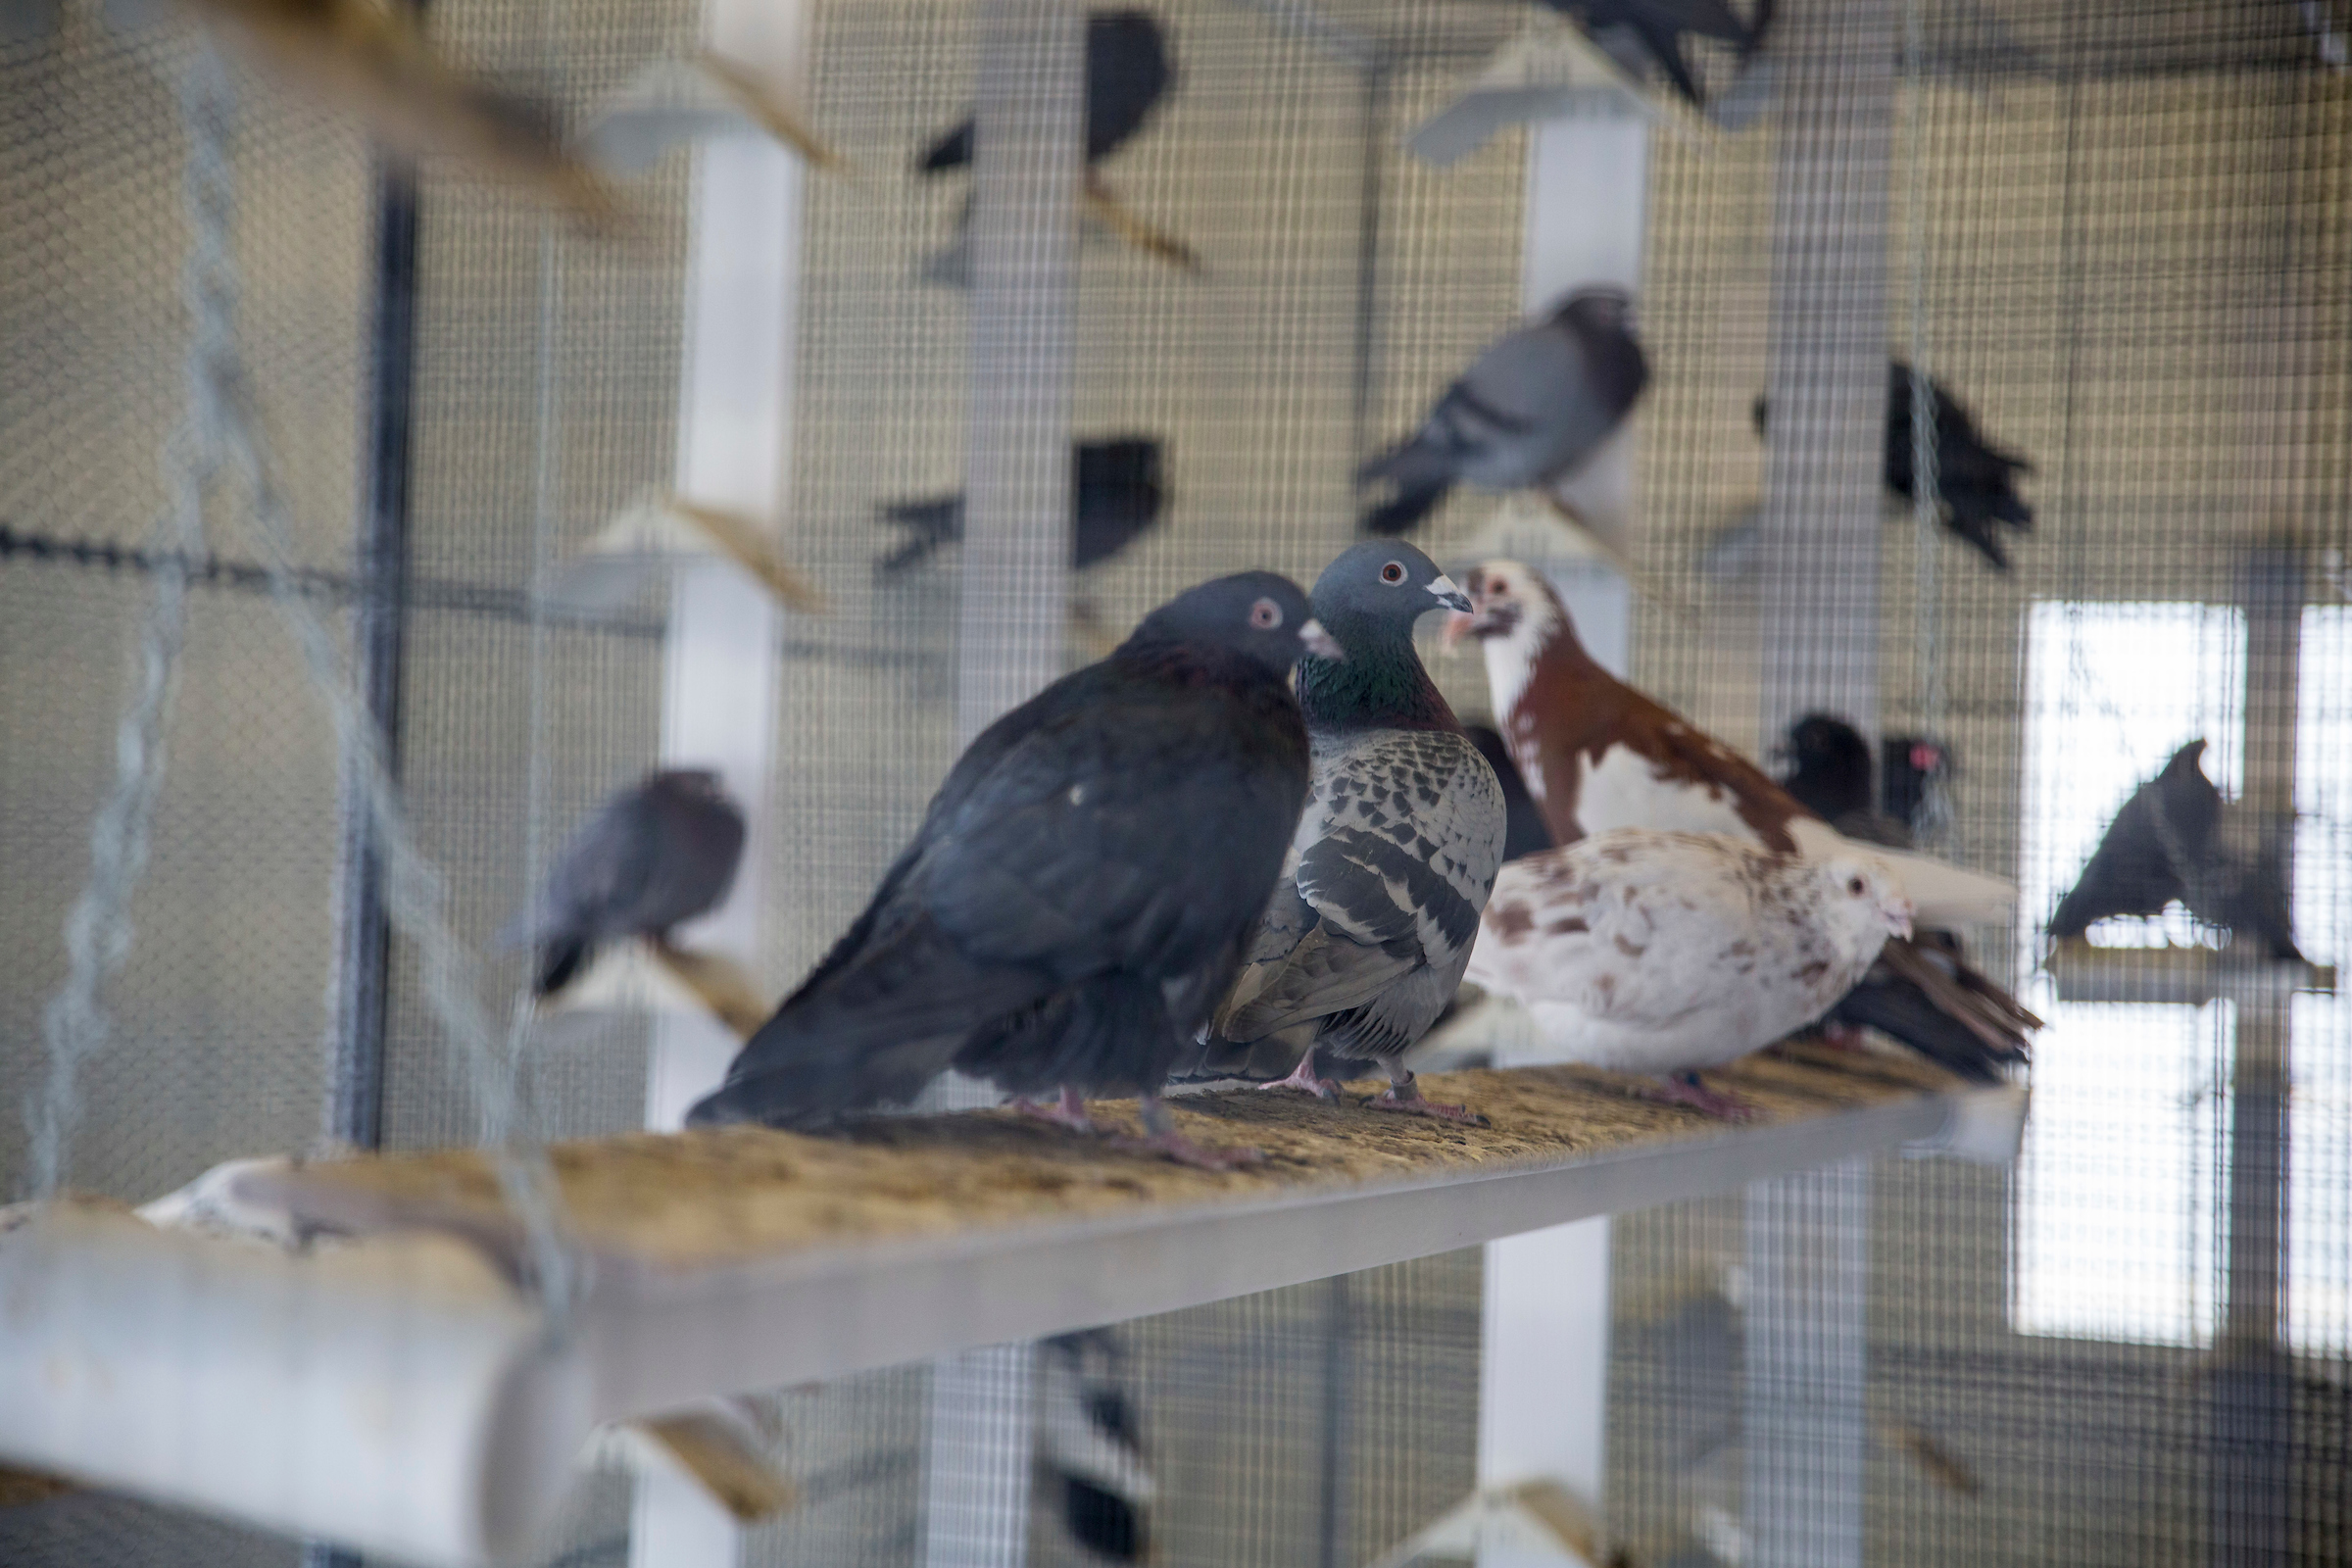 Variations Of A Single Gene Drive Diverse Pigeon Feather